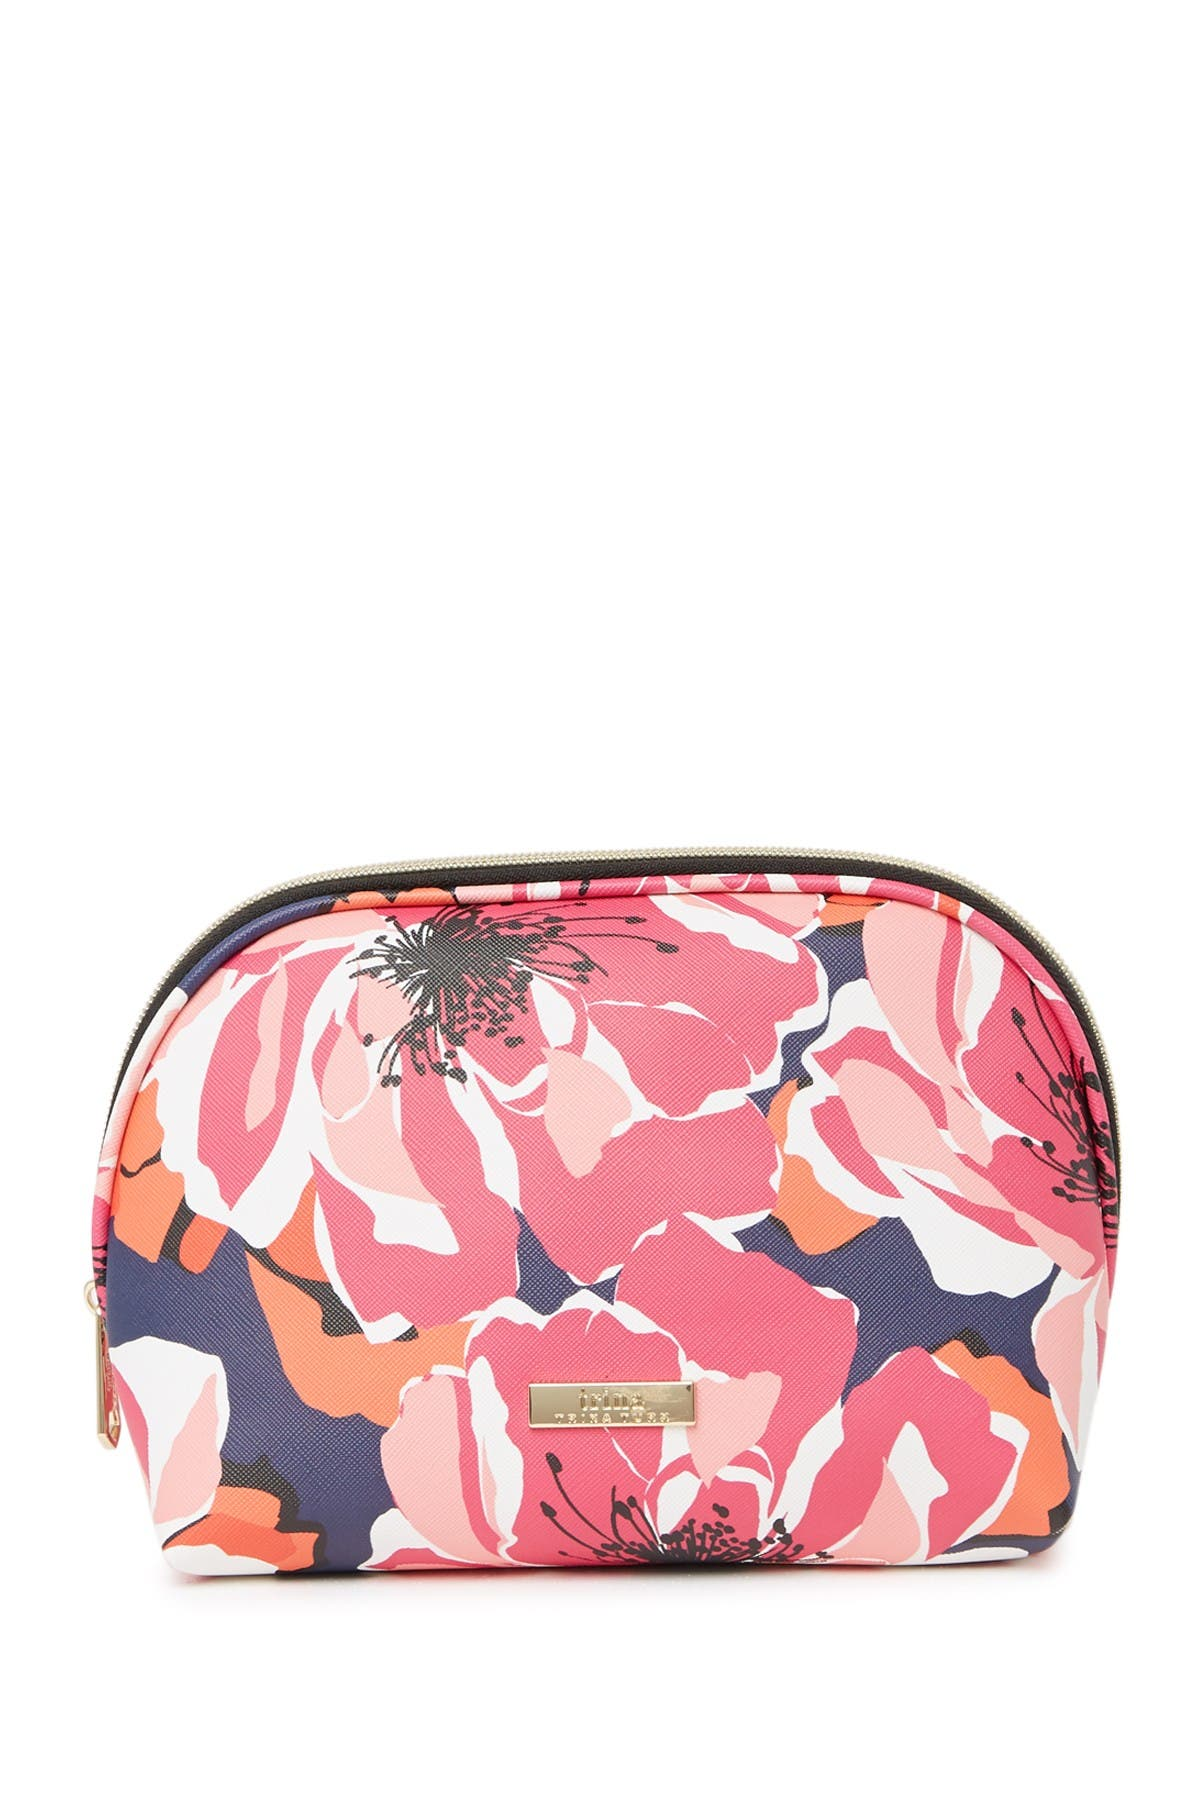 Image of Trina Turk Floral Print Large Dome Case